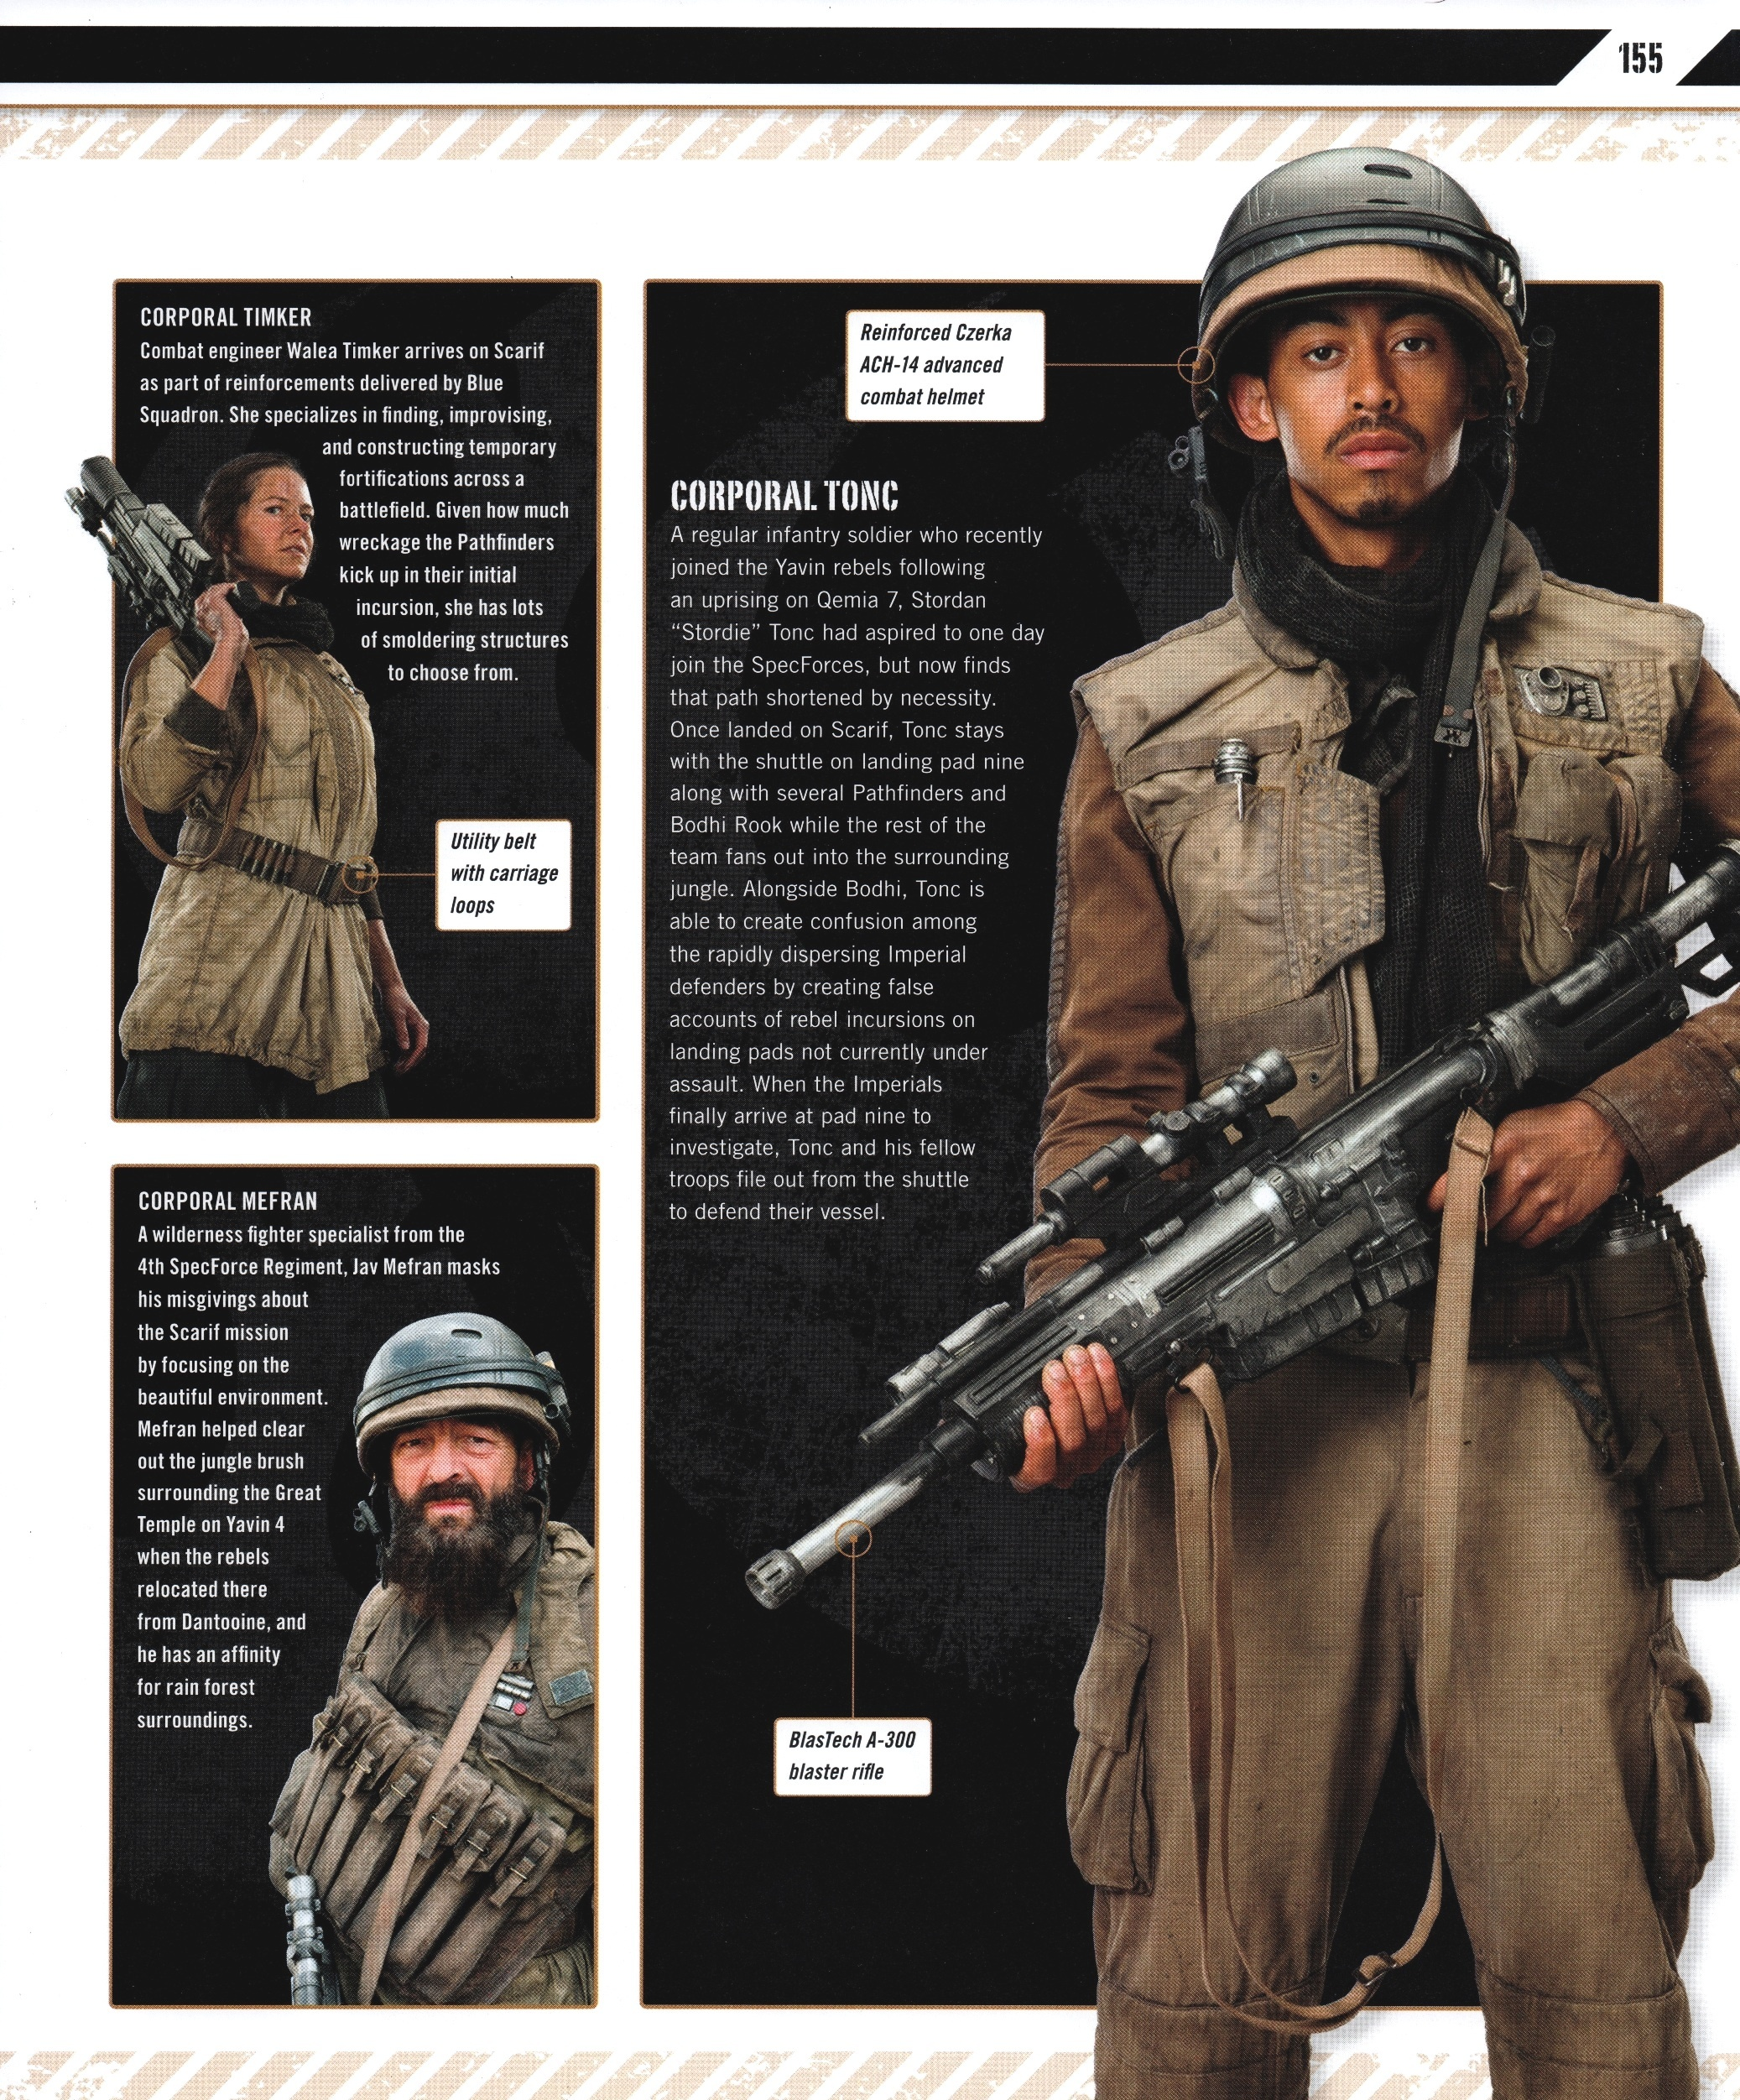 Rogue One Ultimate Visual Guide (b0bafett_Empire) p155